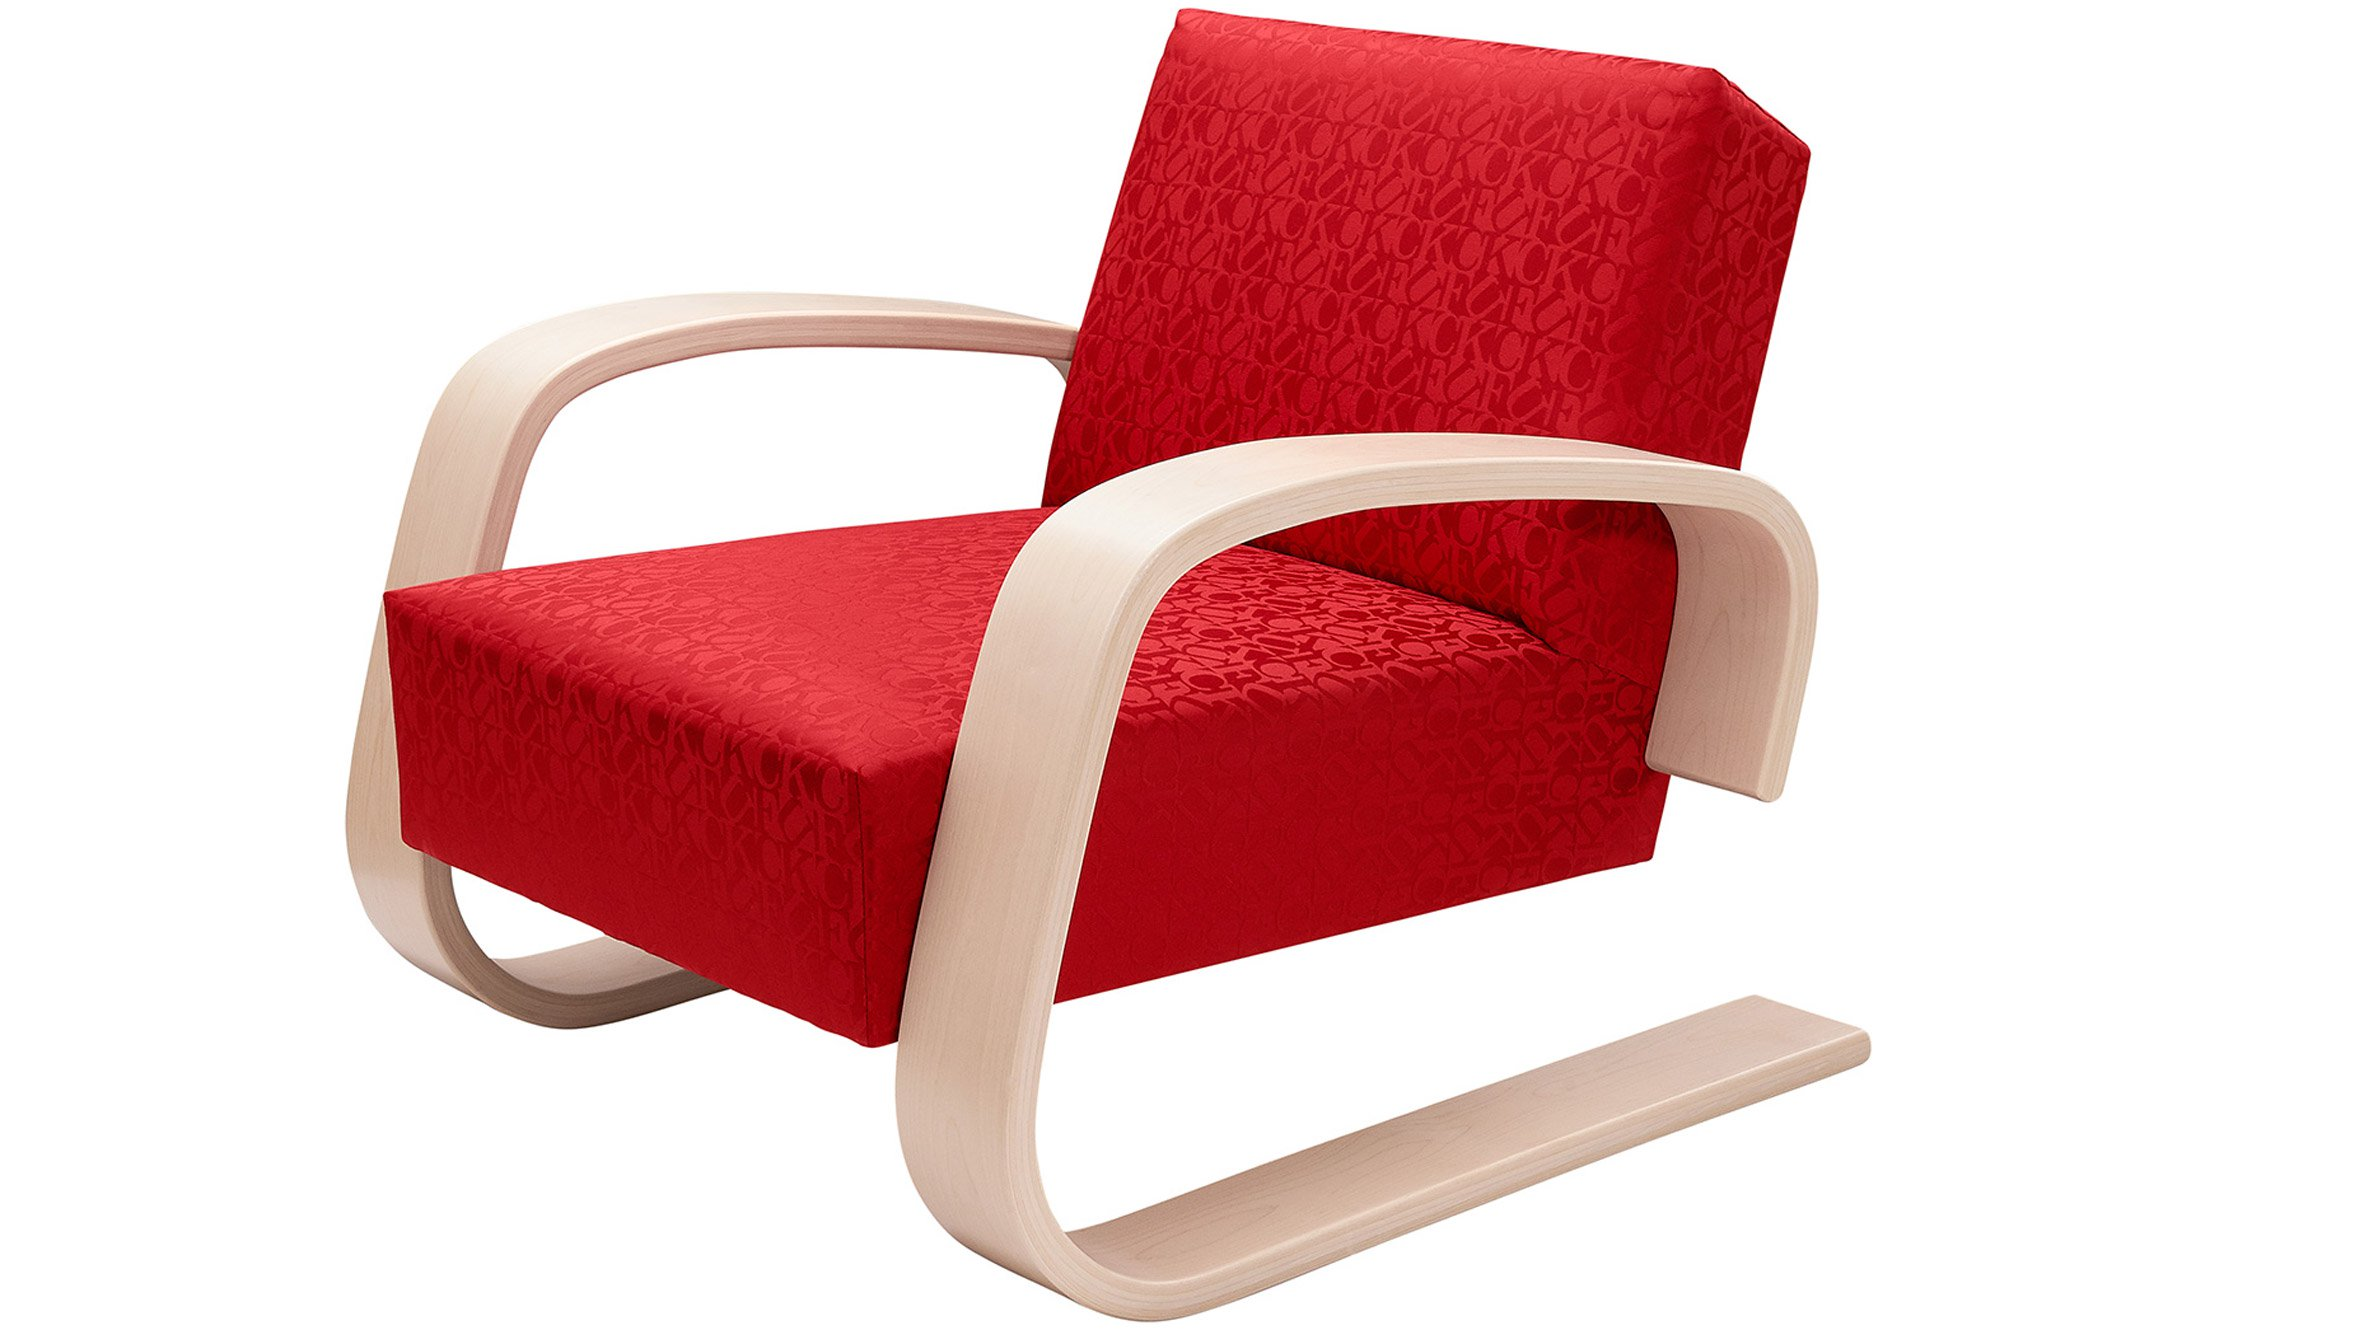 chair latest design folding seat covers handsome modern house perches above lake michigan curbed